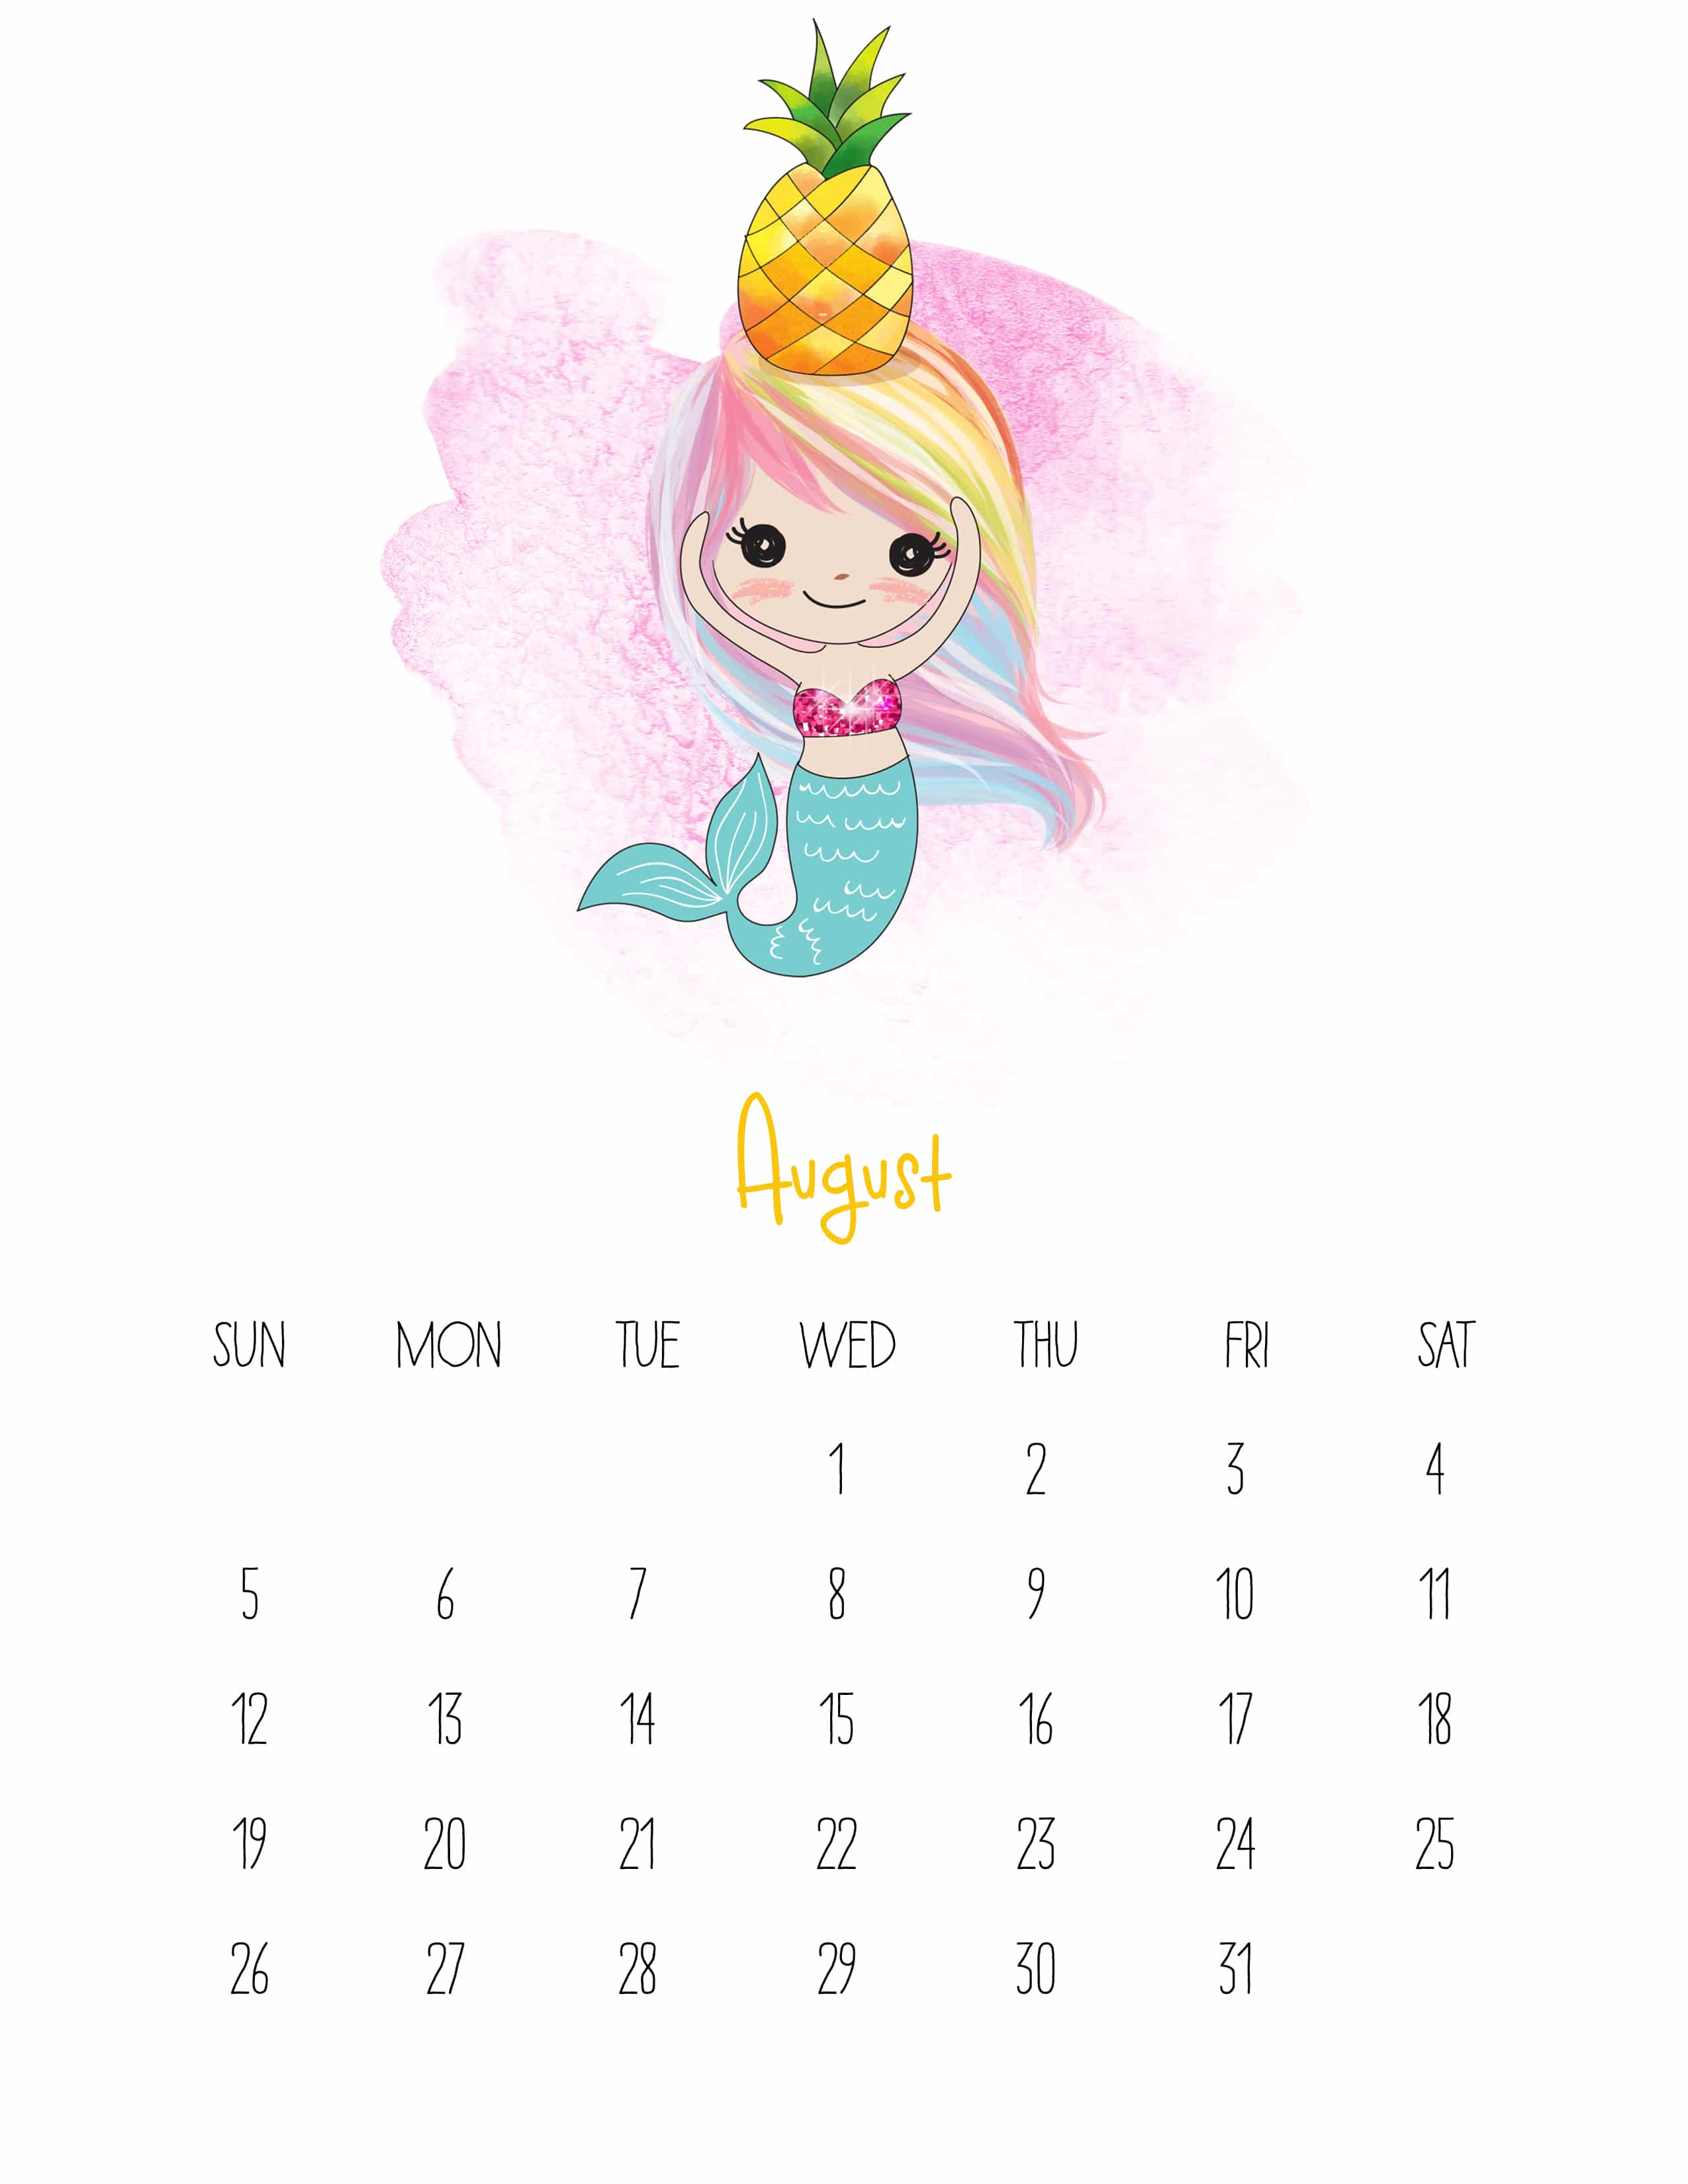 2018 August Planning Calendar – Quote Images HD Free